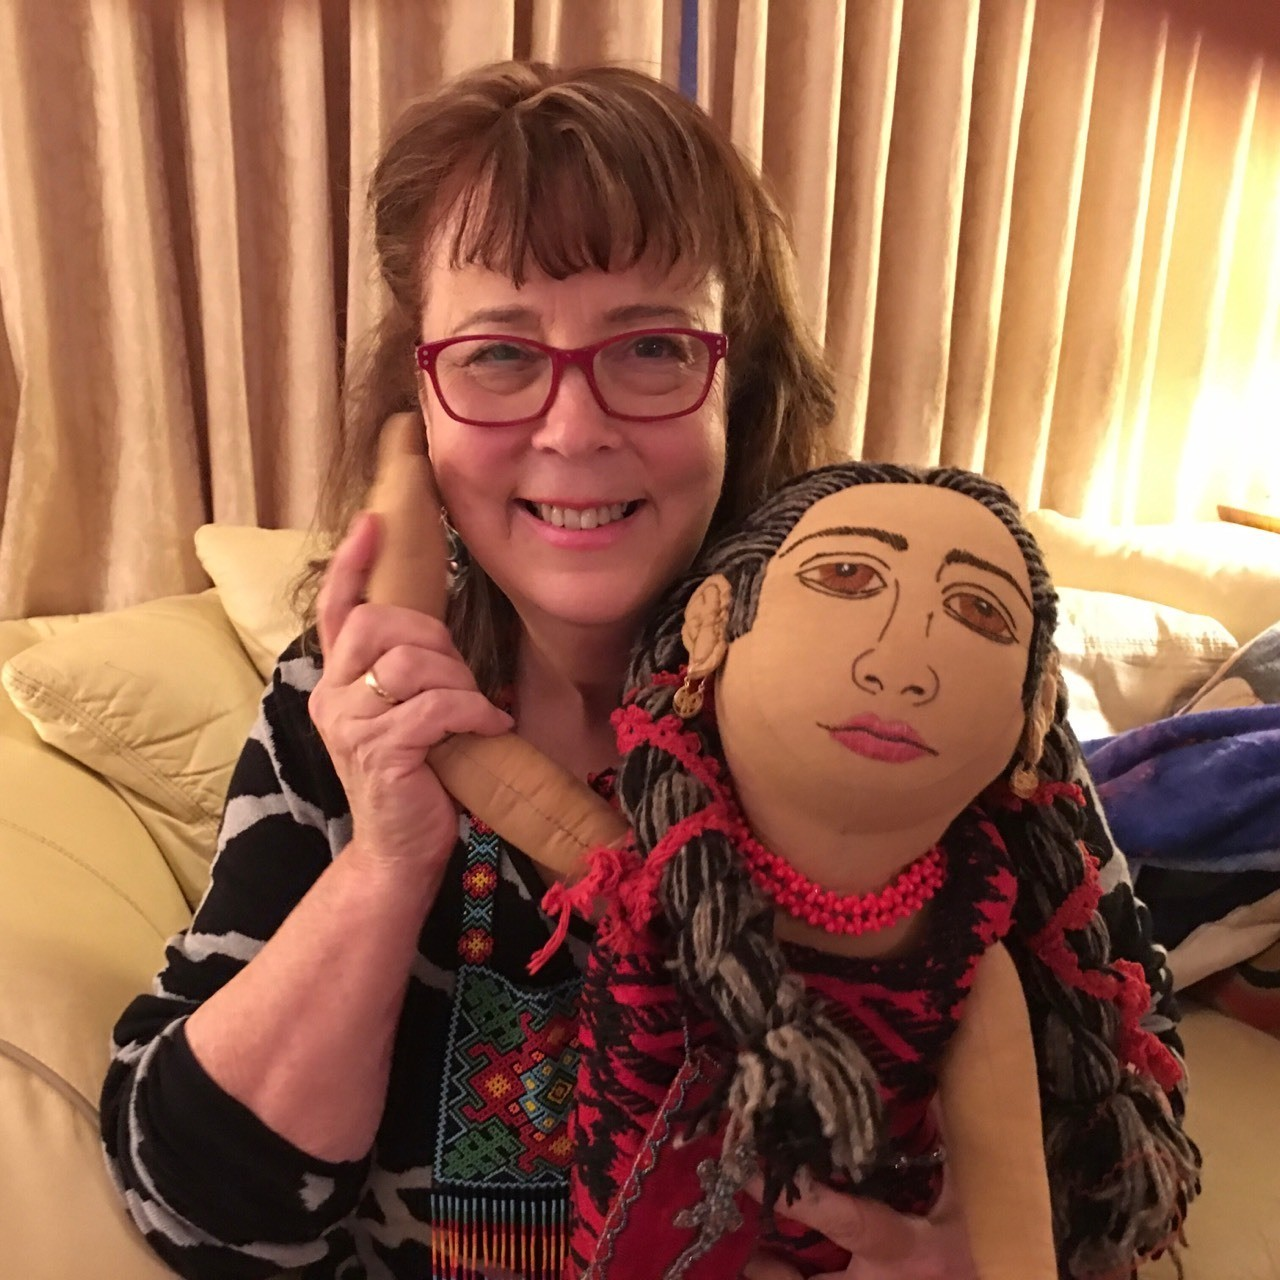 My sister, the artist Cheryl Renee along, gifted me with this fabulous handmade doll she commissioned from an artist in Tenochitlan, Mexico.